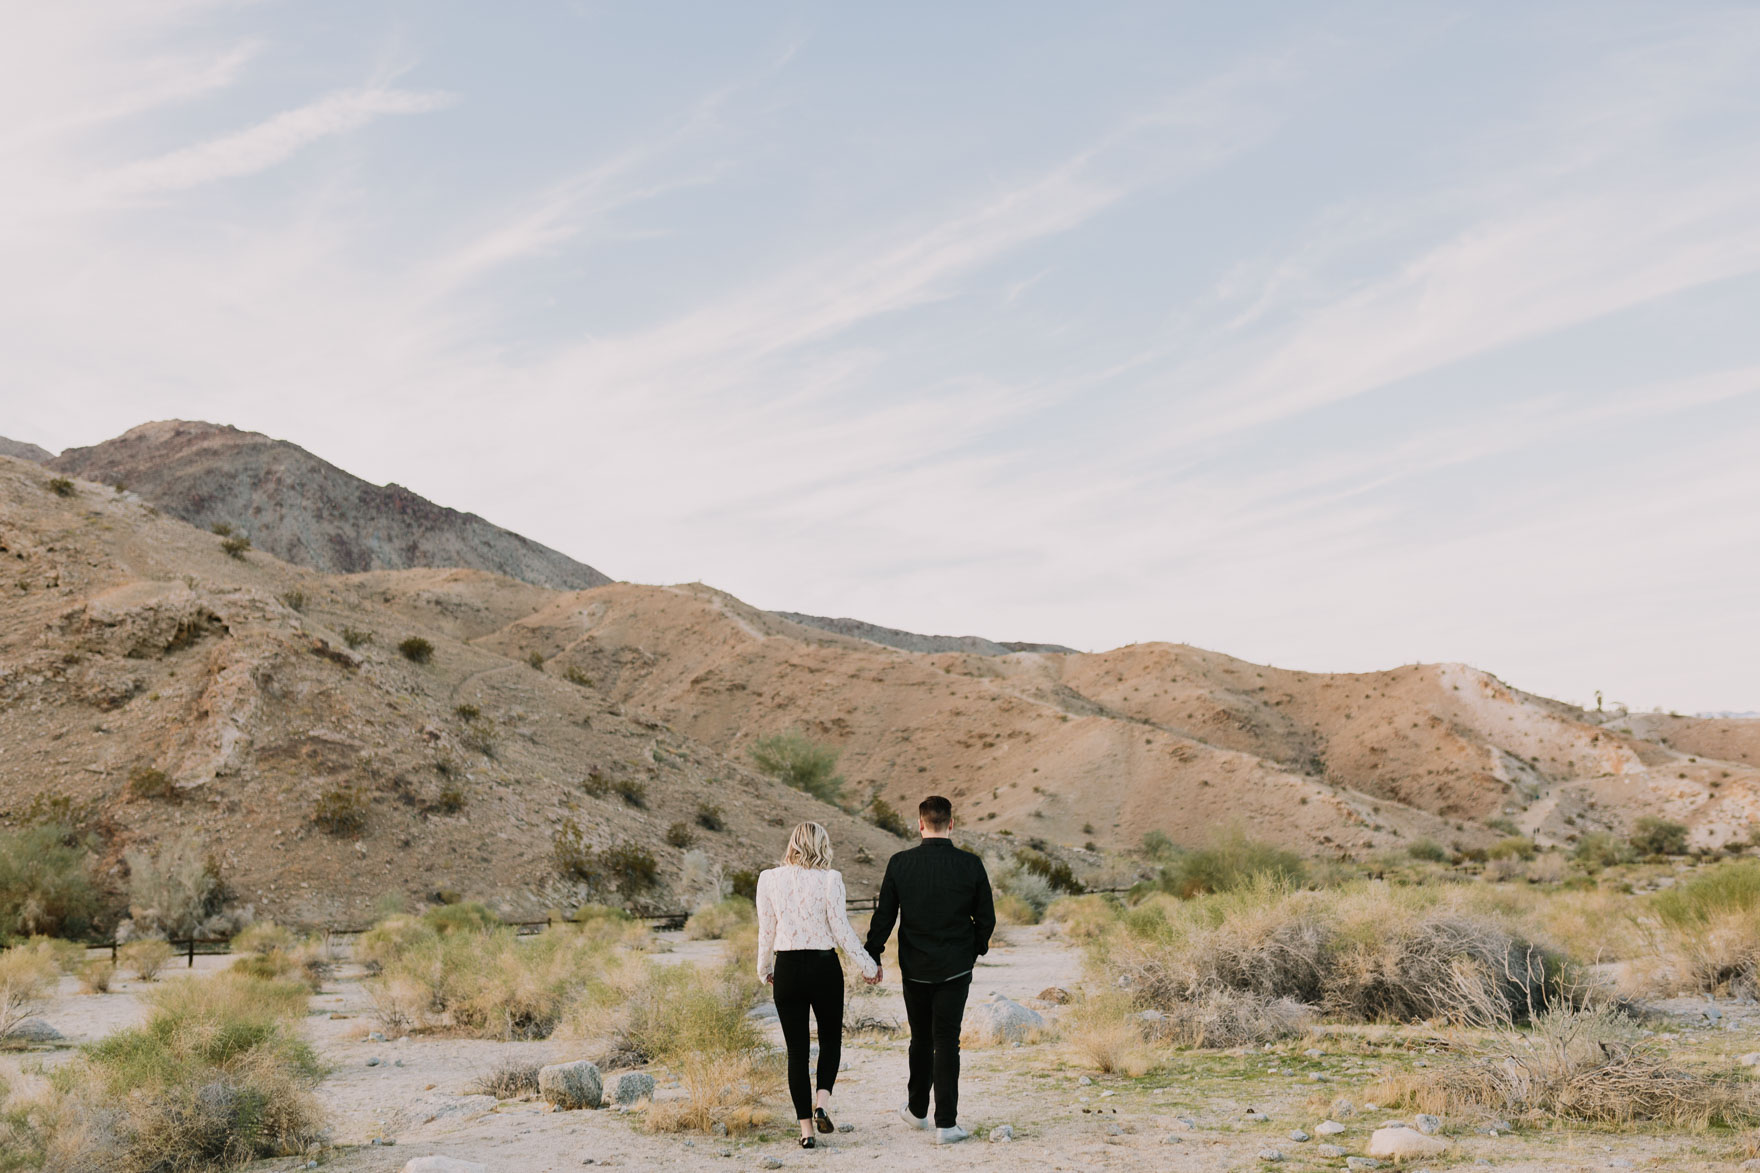 Black and White Desert Stroll – Photo by Let's Frolic Together